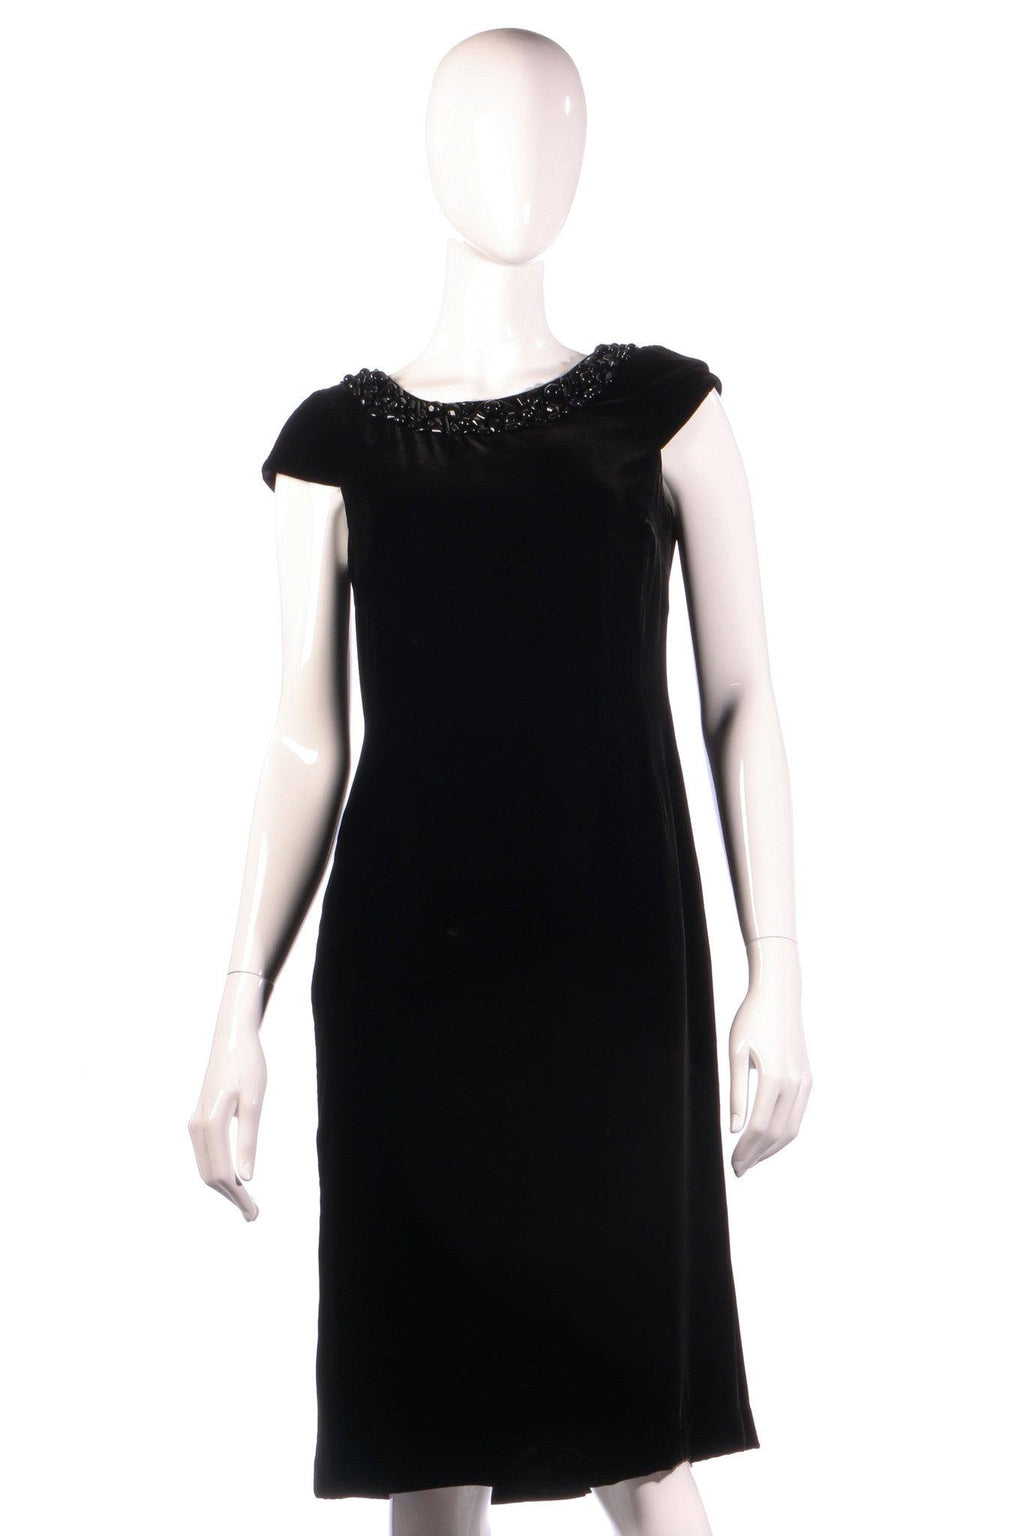 New black velvet hobbs dress size 10 with bead detail